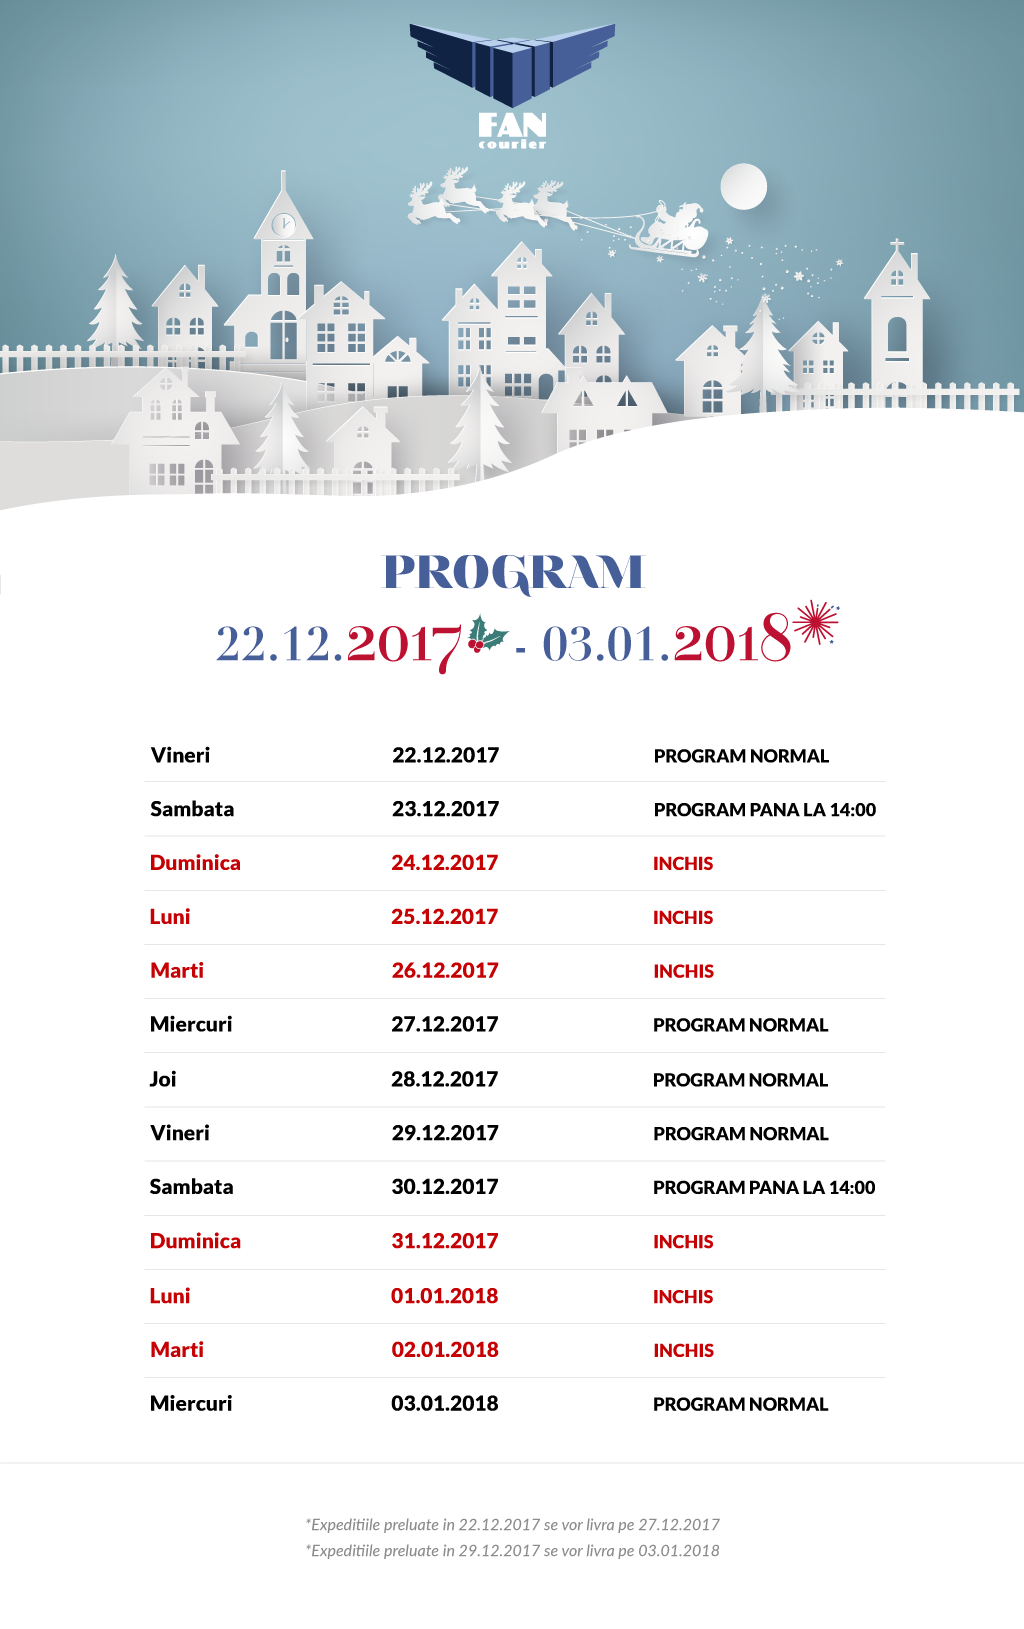 fan-courier-program-22-12-03-01-1